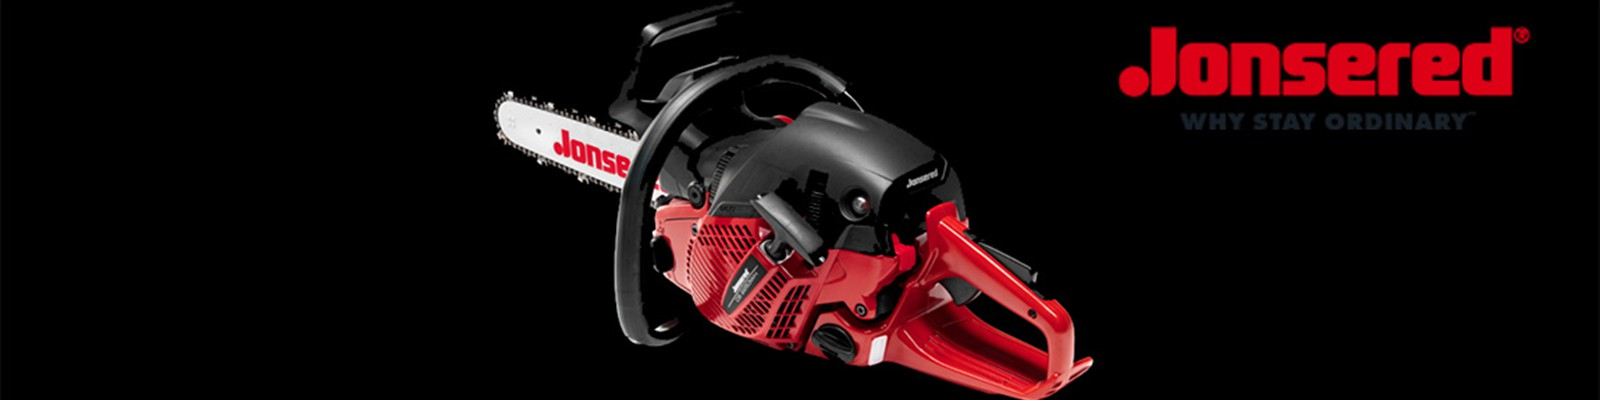 Jonsered Chainsaws, Mowers, Trimmers, Blowers